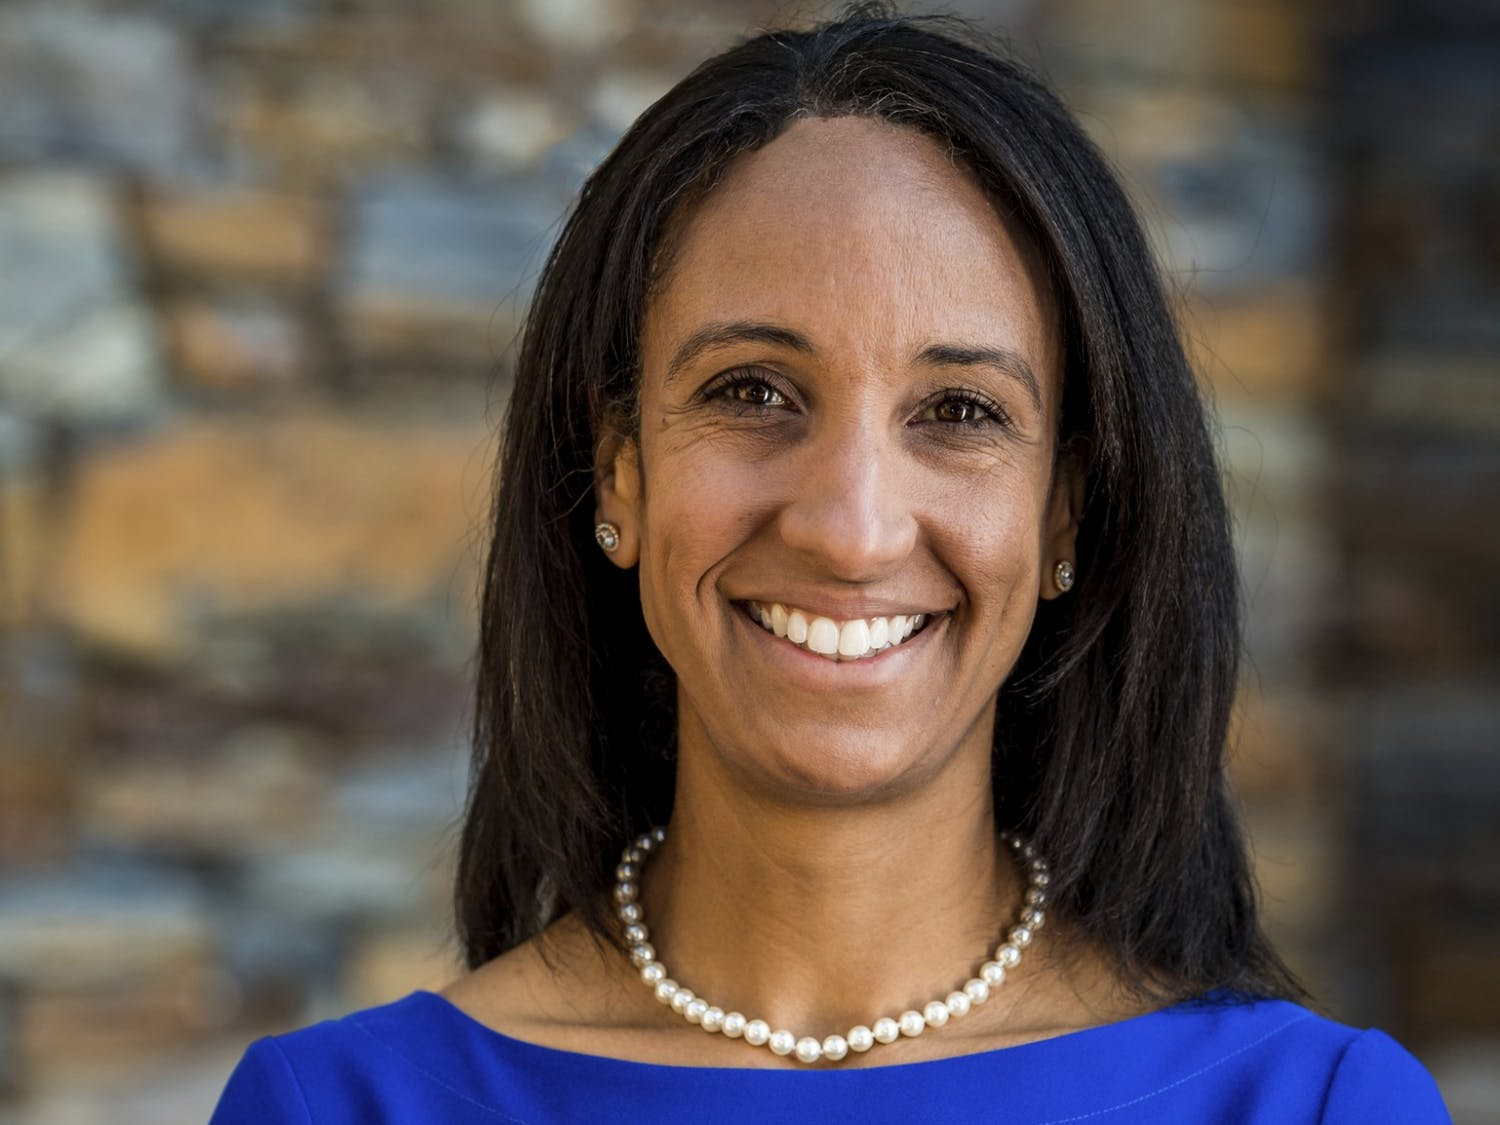 Duke's hiring of Nina King signaled that the board of trustees intends to continue the path Kevin White had Duke Athletics on.